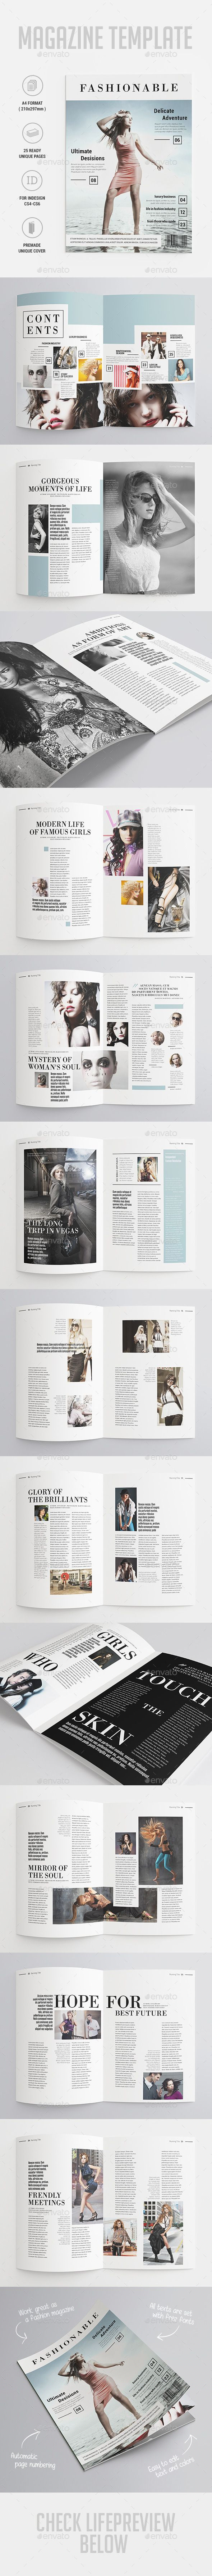 Fashion Magazine Template | #magazinetemplate #magazinedesign | Download: http://graphicriver.net/item/fashion-magazine/10093001?ref=ksioks